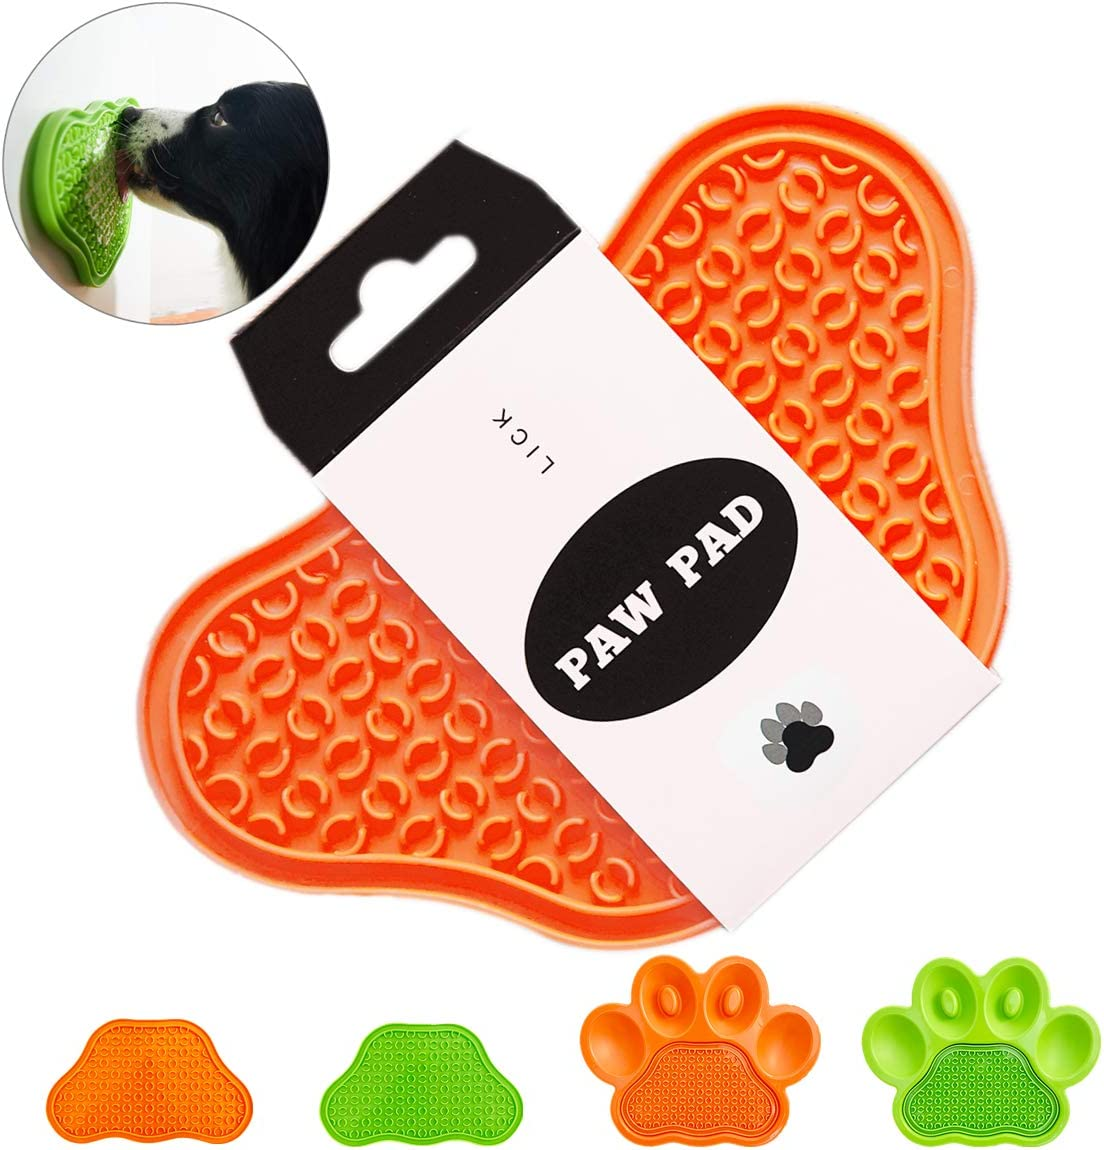 Upgrade Paw-Shaped Lick Mat for Dog/Cat, Slow Feed Treater Pad, Food Dispensing with Suctions to Wall, Anxiety Smoother Stress Relief Distraction Device for Pet Bathing Grooming and Dog Training